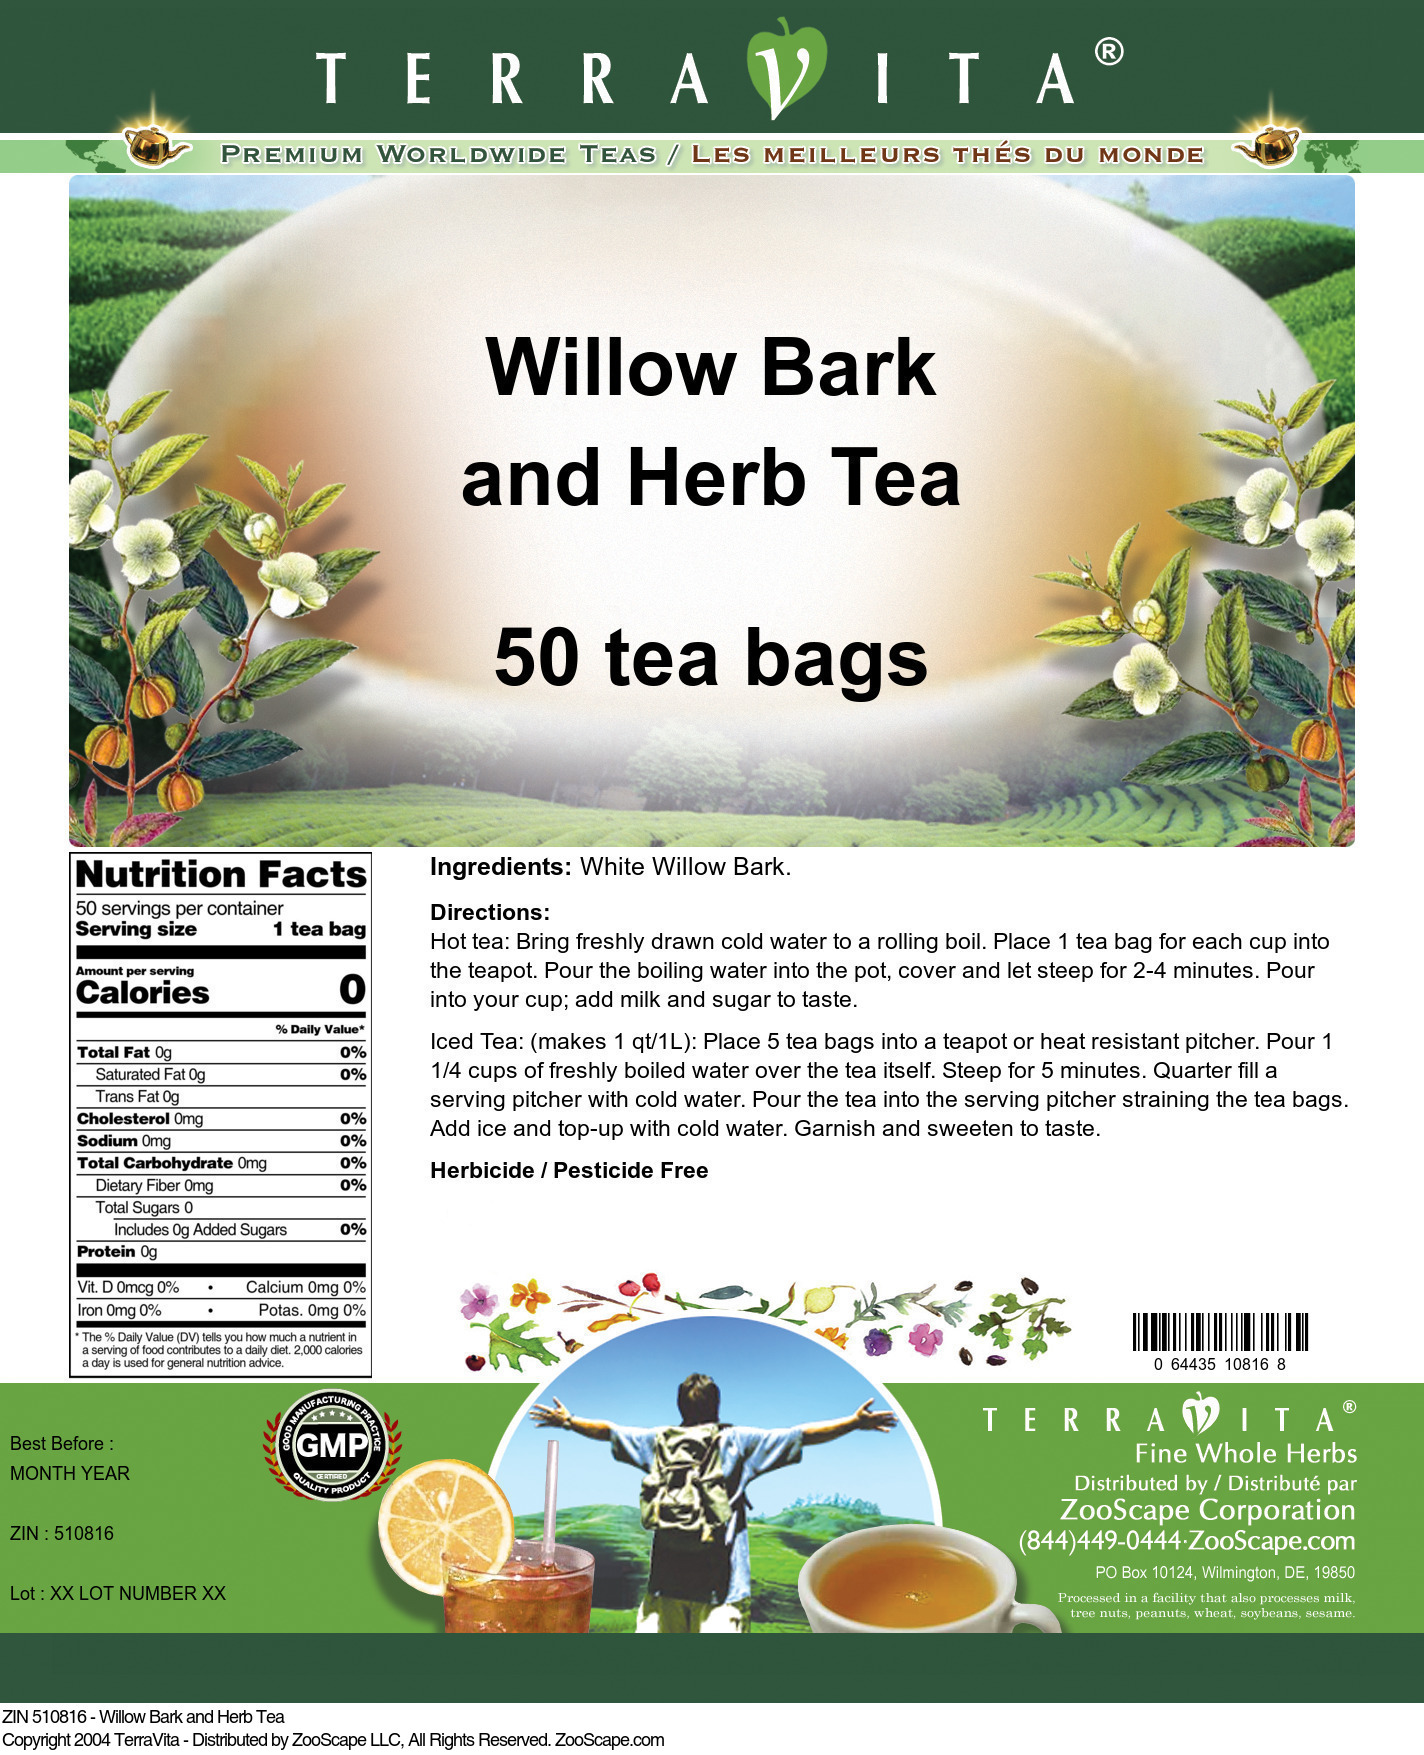 Willow Bark and Herb Tea